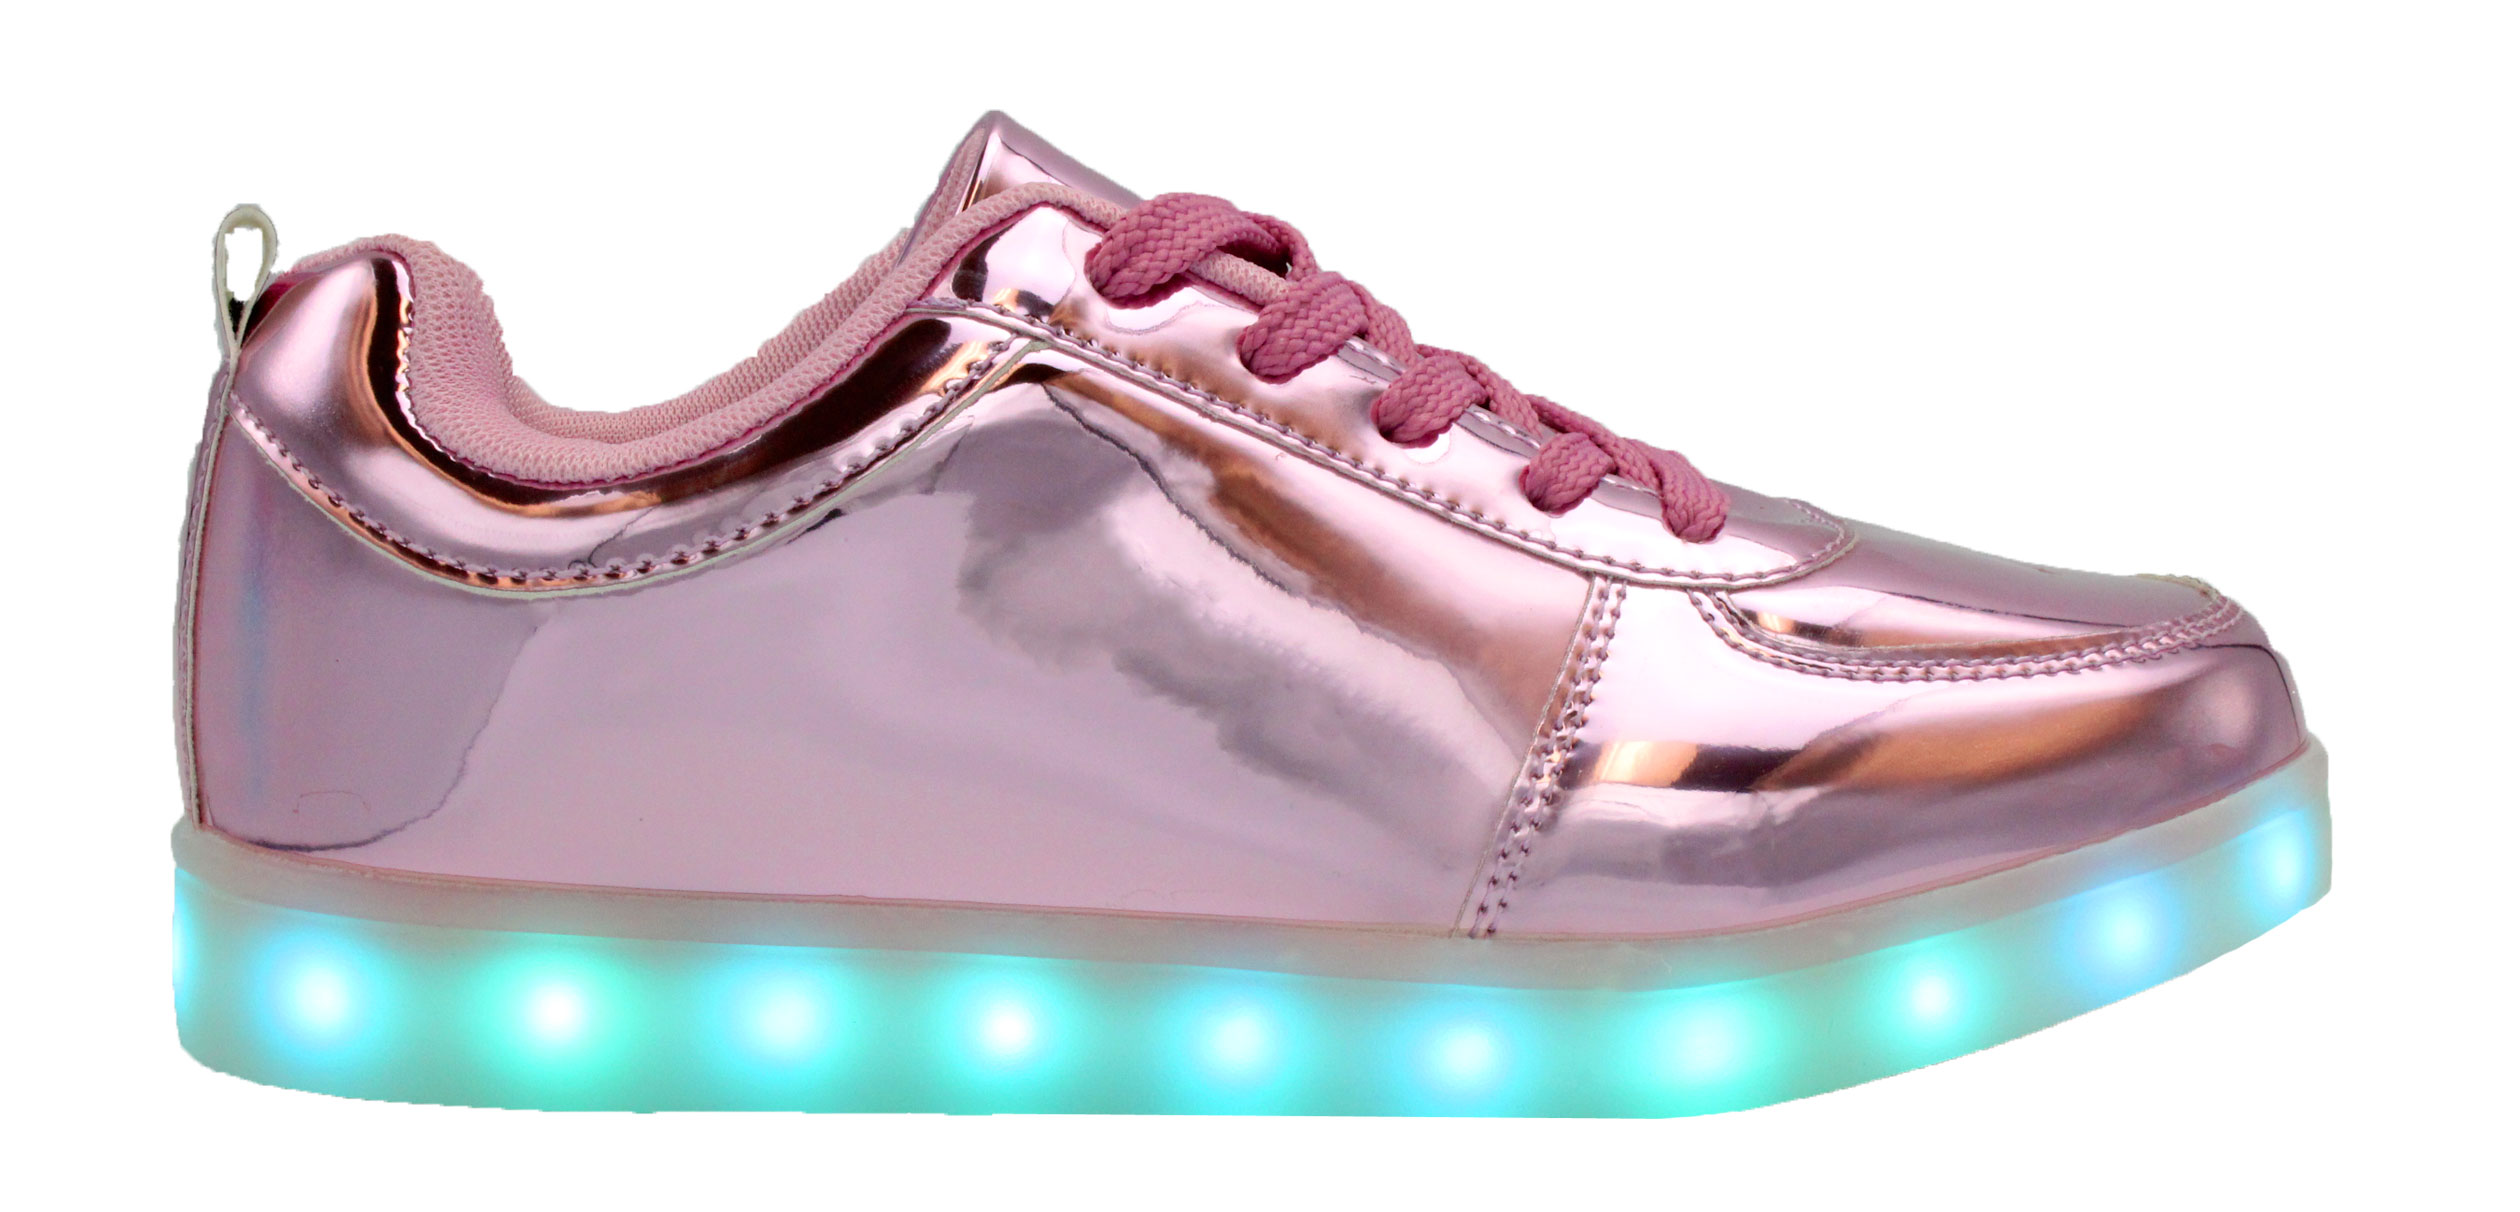 8a71cd021c29 Galaxy LED Shoes Light Up USB Charging Low Top Kids Sneakers